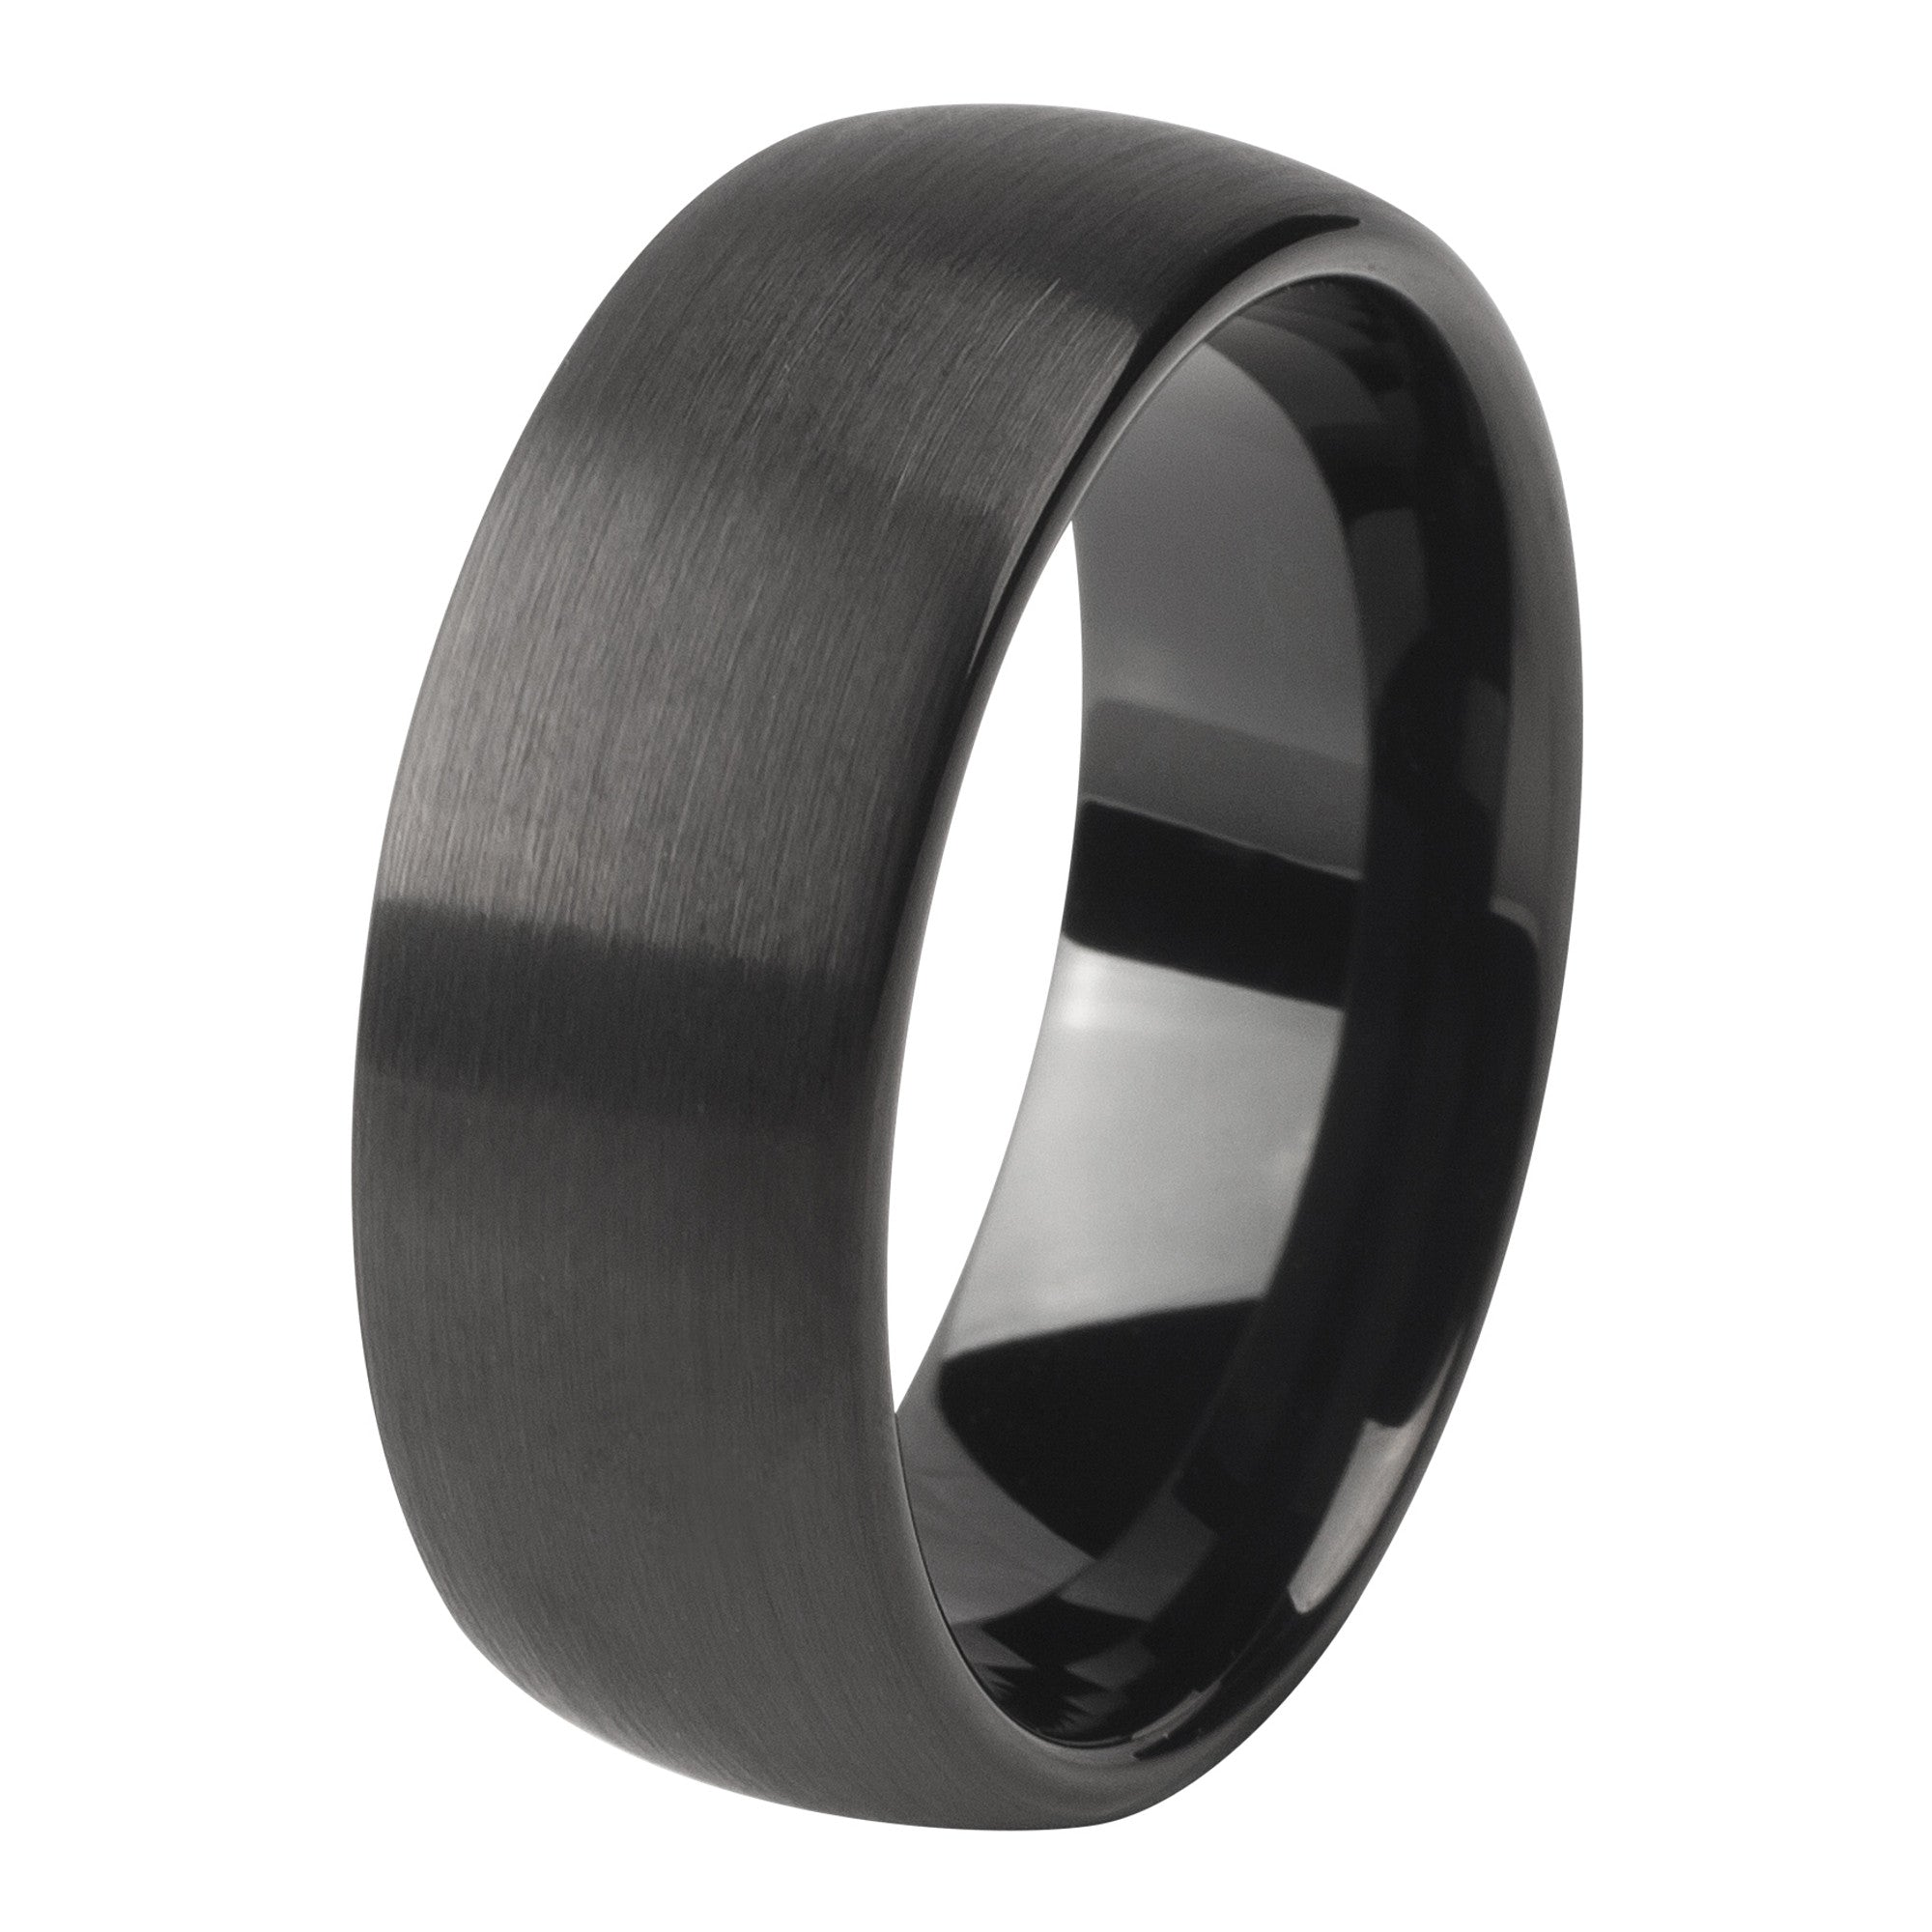 Black brushed ring 8mm - Ring - MANOOCO - Ring - manooco